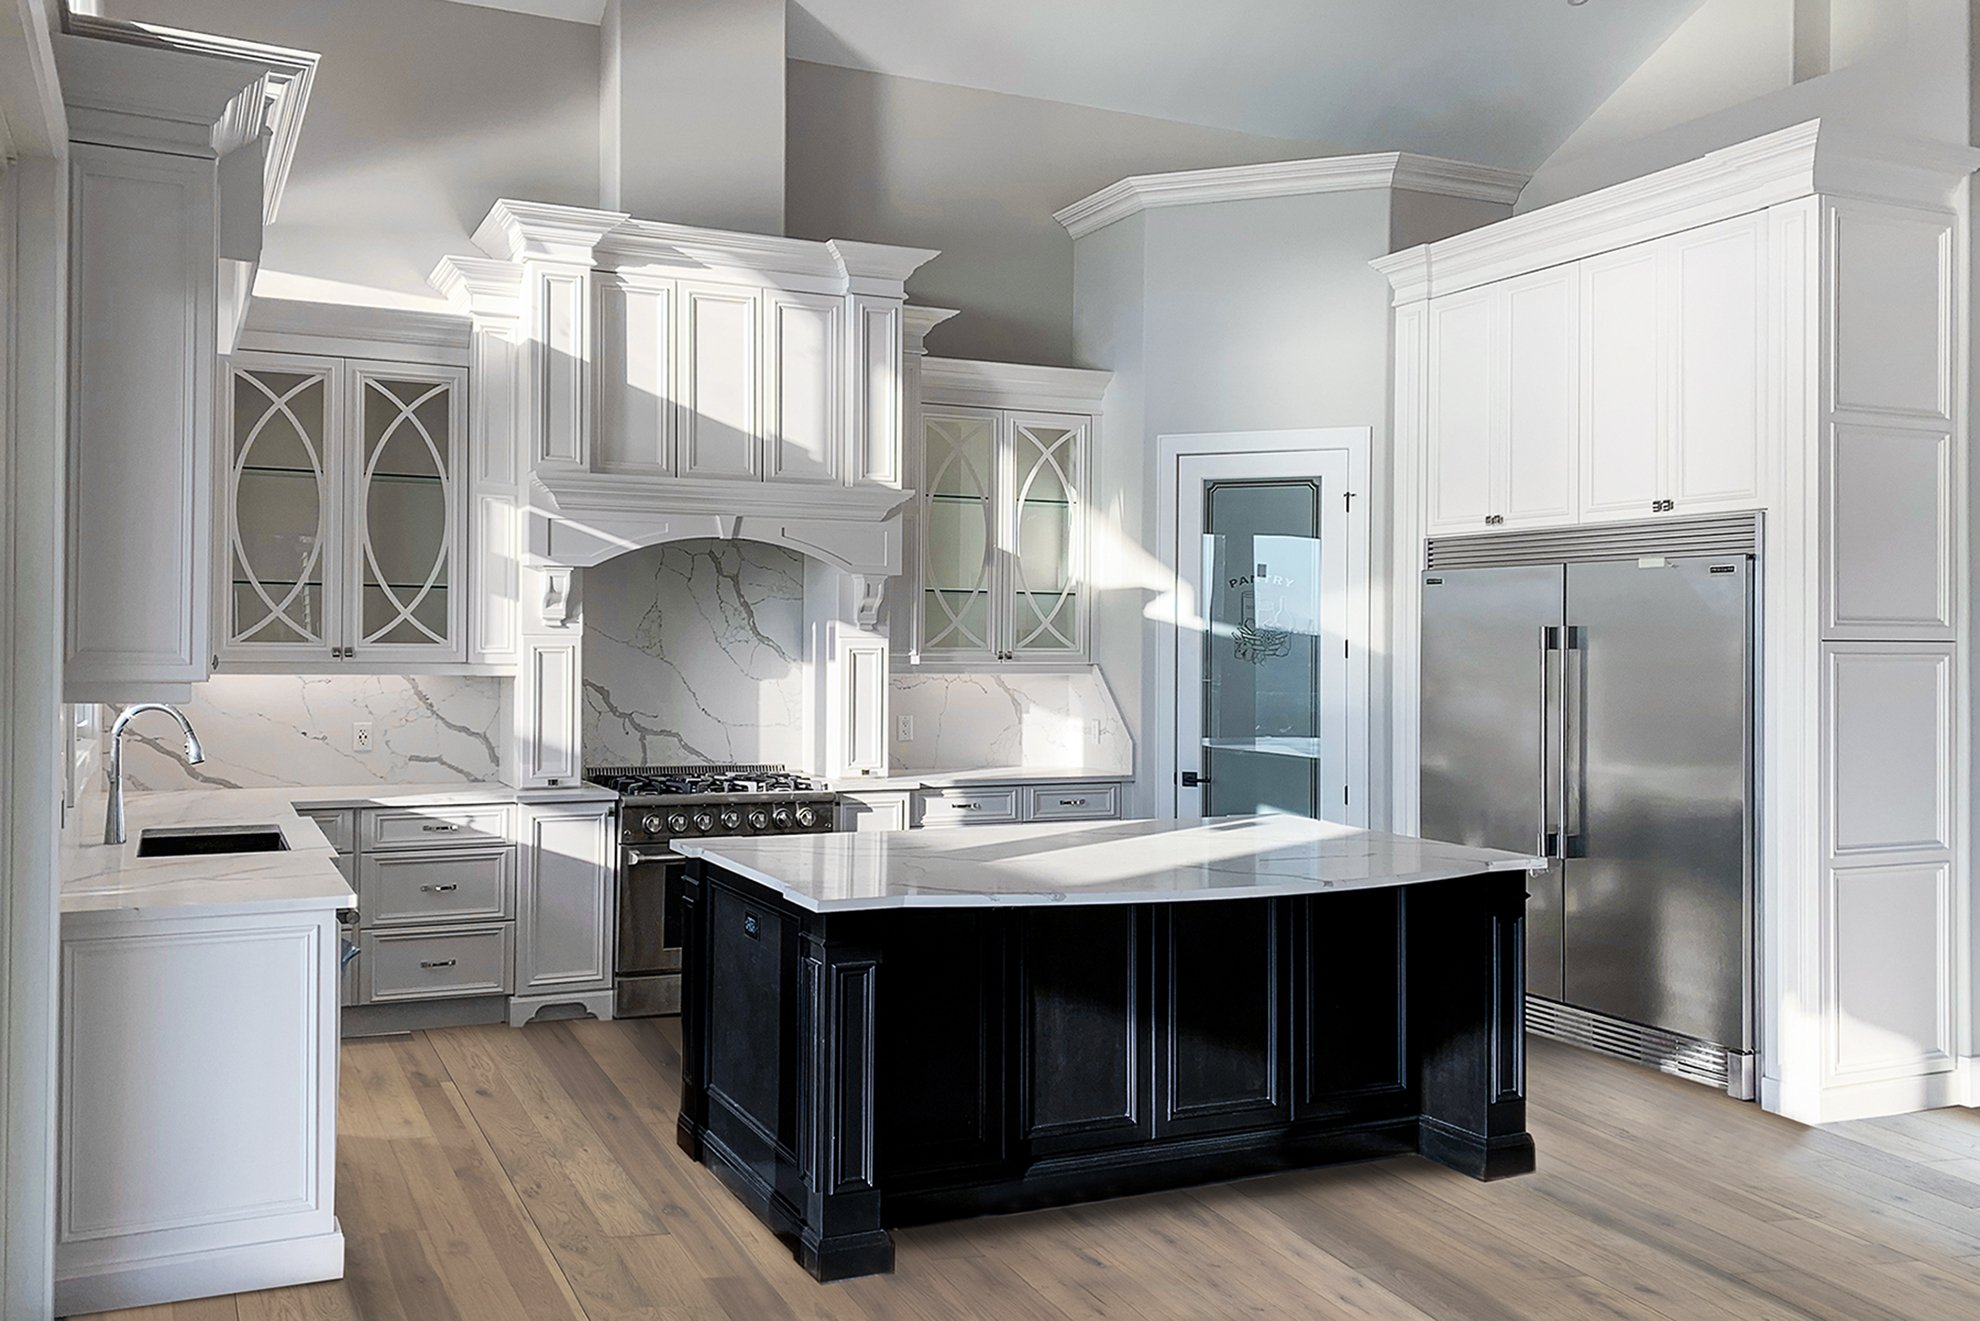 Azule Kitchens Stoney Creek Ontario – Choose White Kitchen Cabinets Forever!